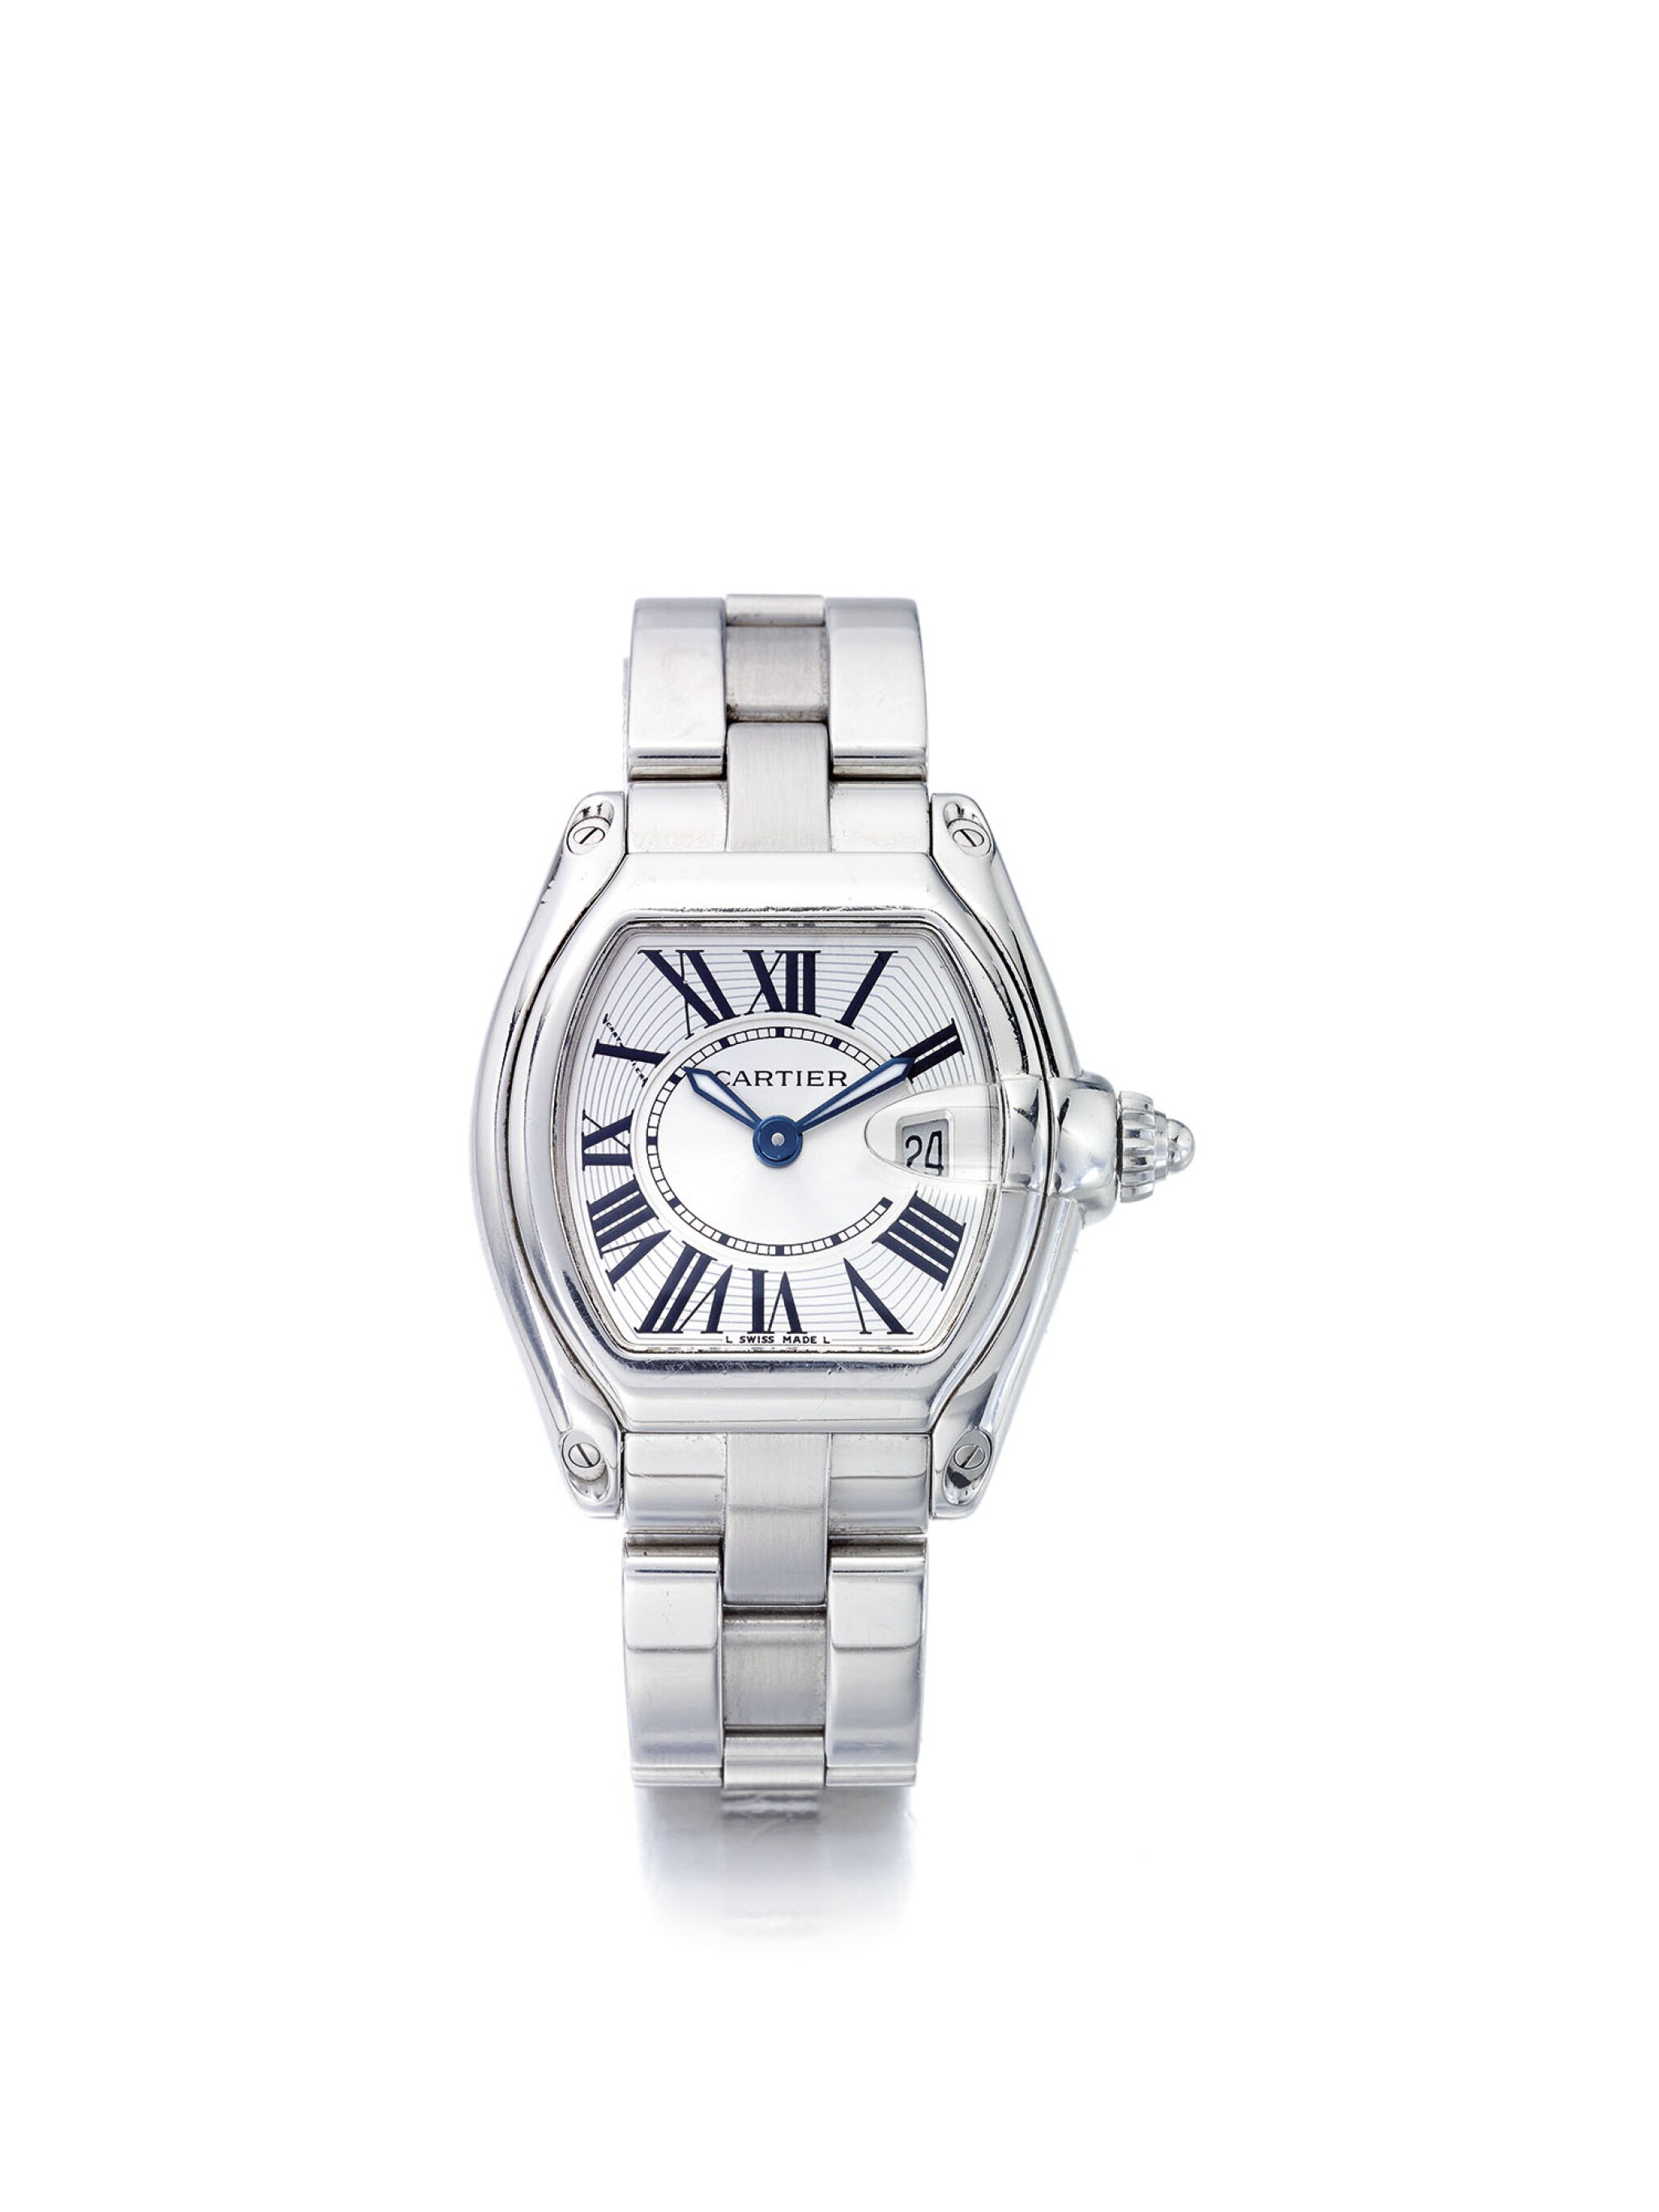 CARTIER | ROADSTER REF 2675,  A LADY'S STAINLESS STEEL WRISTWATCH WITH DATE AND BRACELET CIRCA 2000